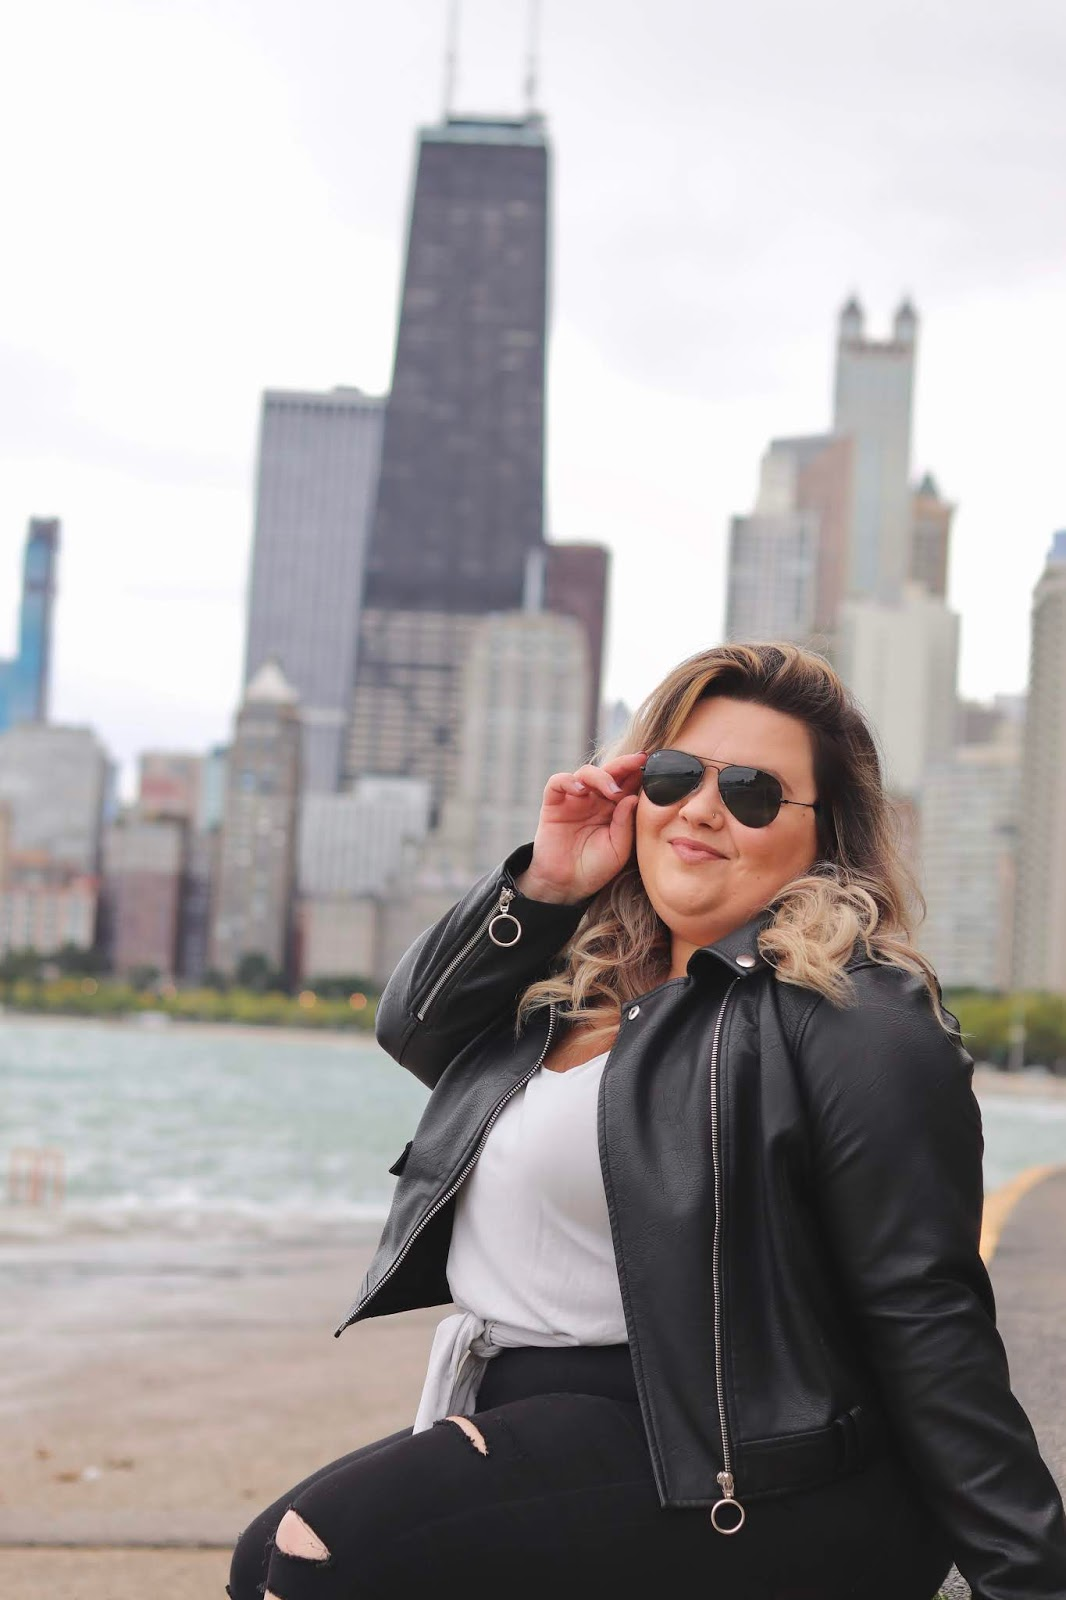 Chicago Plus Size Petite Fashion Blogger, influencer, YouTuber, and model Natalie Craig, of Natalie in the City, reviews Ray-Ban Aviator sunglasses from Khol's.